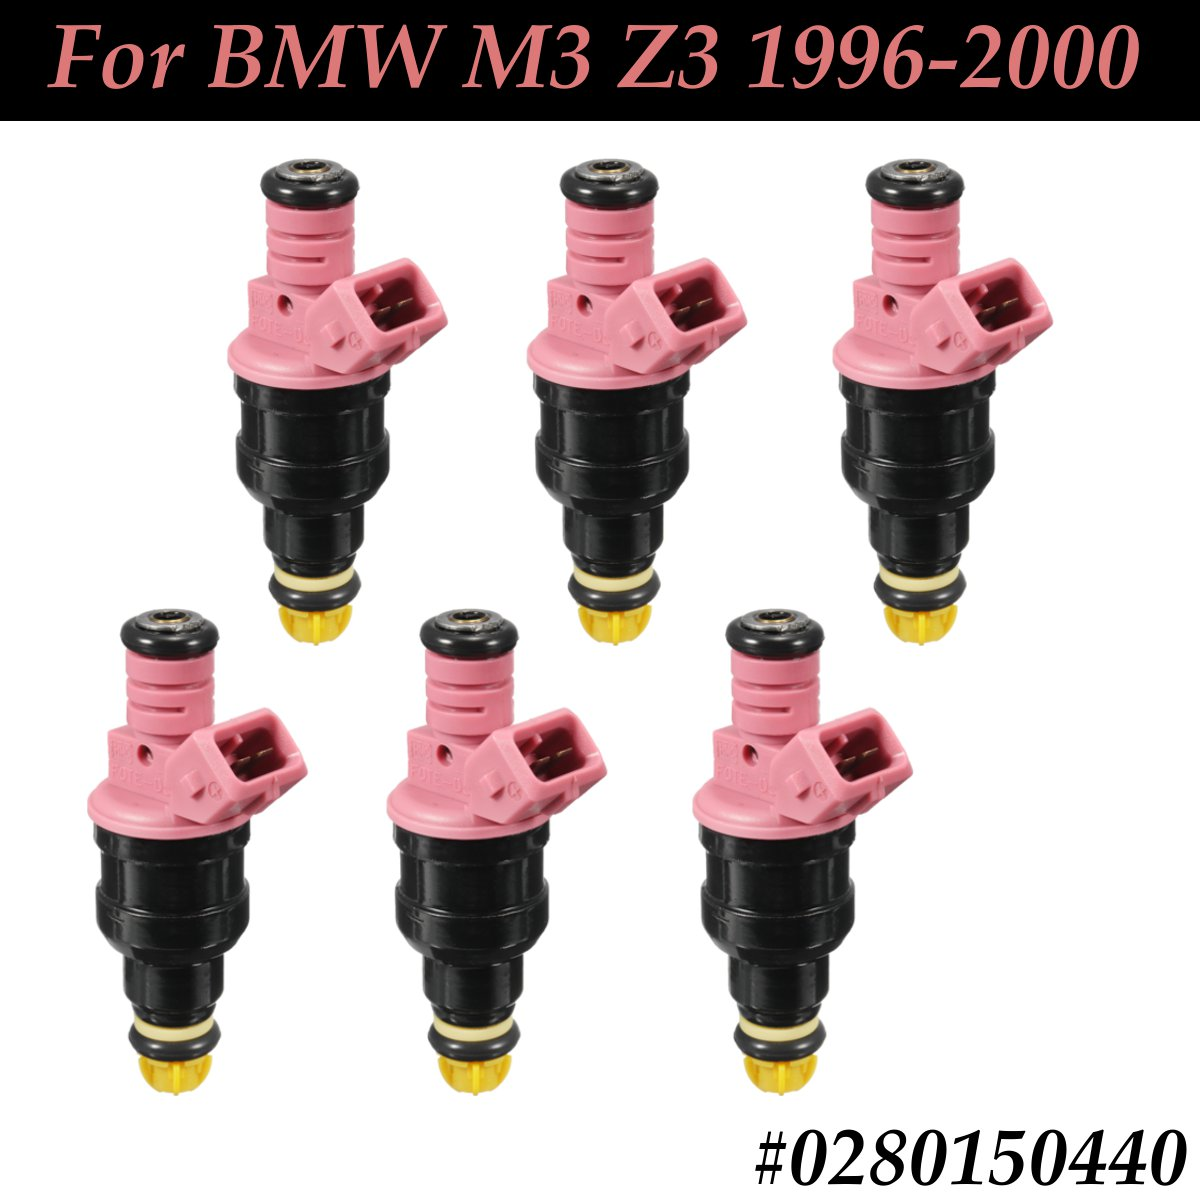 #0280150440 #852-12157 6Pcs New Front Pink Fuel Injector Flow Replacement For BMW M3 Z3 1996 1997 1998 1999 2000#0280150440 #852-12157 6Pcs New Front Pink Fuel Injector Flow Replacement For BMW M3 Z3 1996 1997 1998 1999 2000